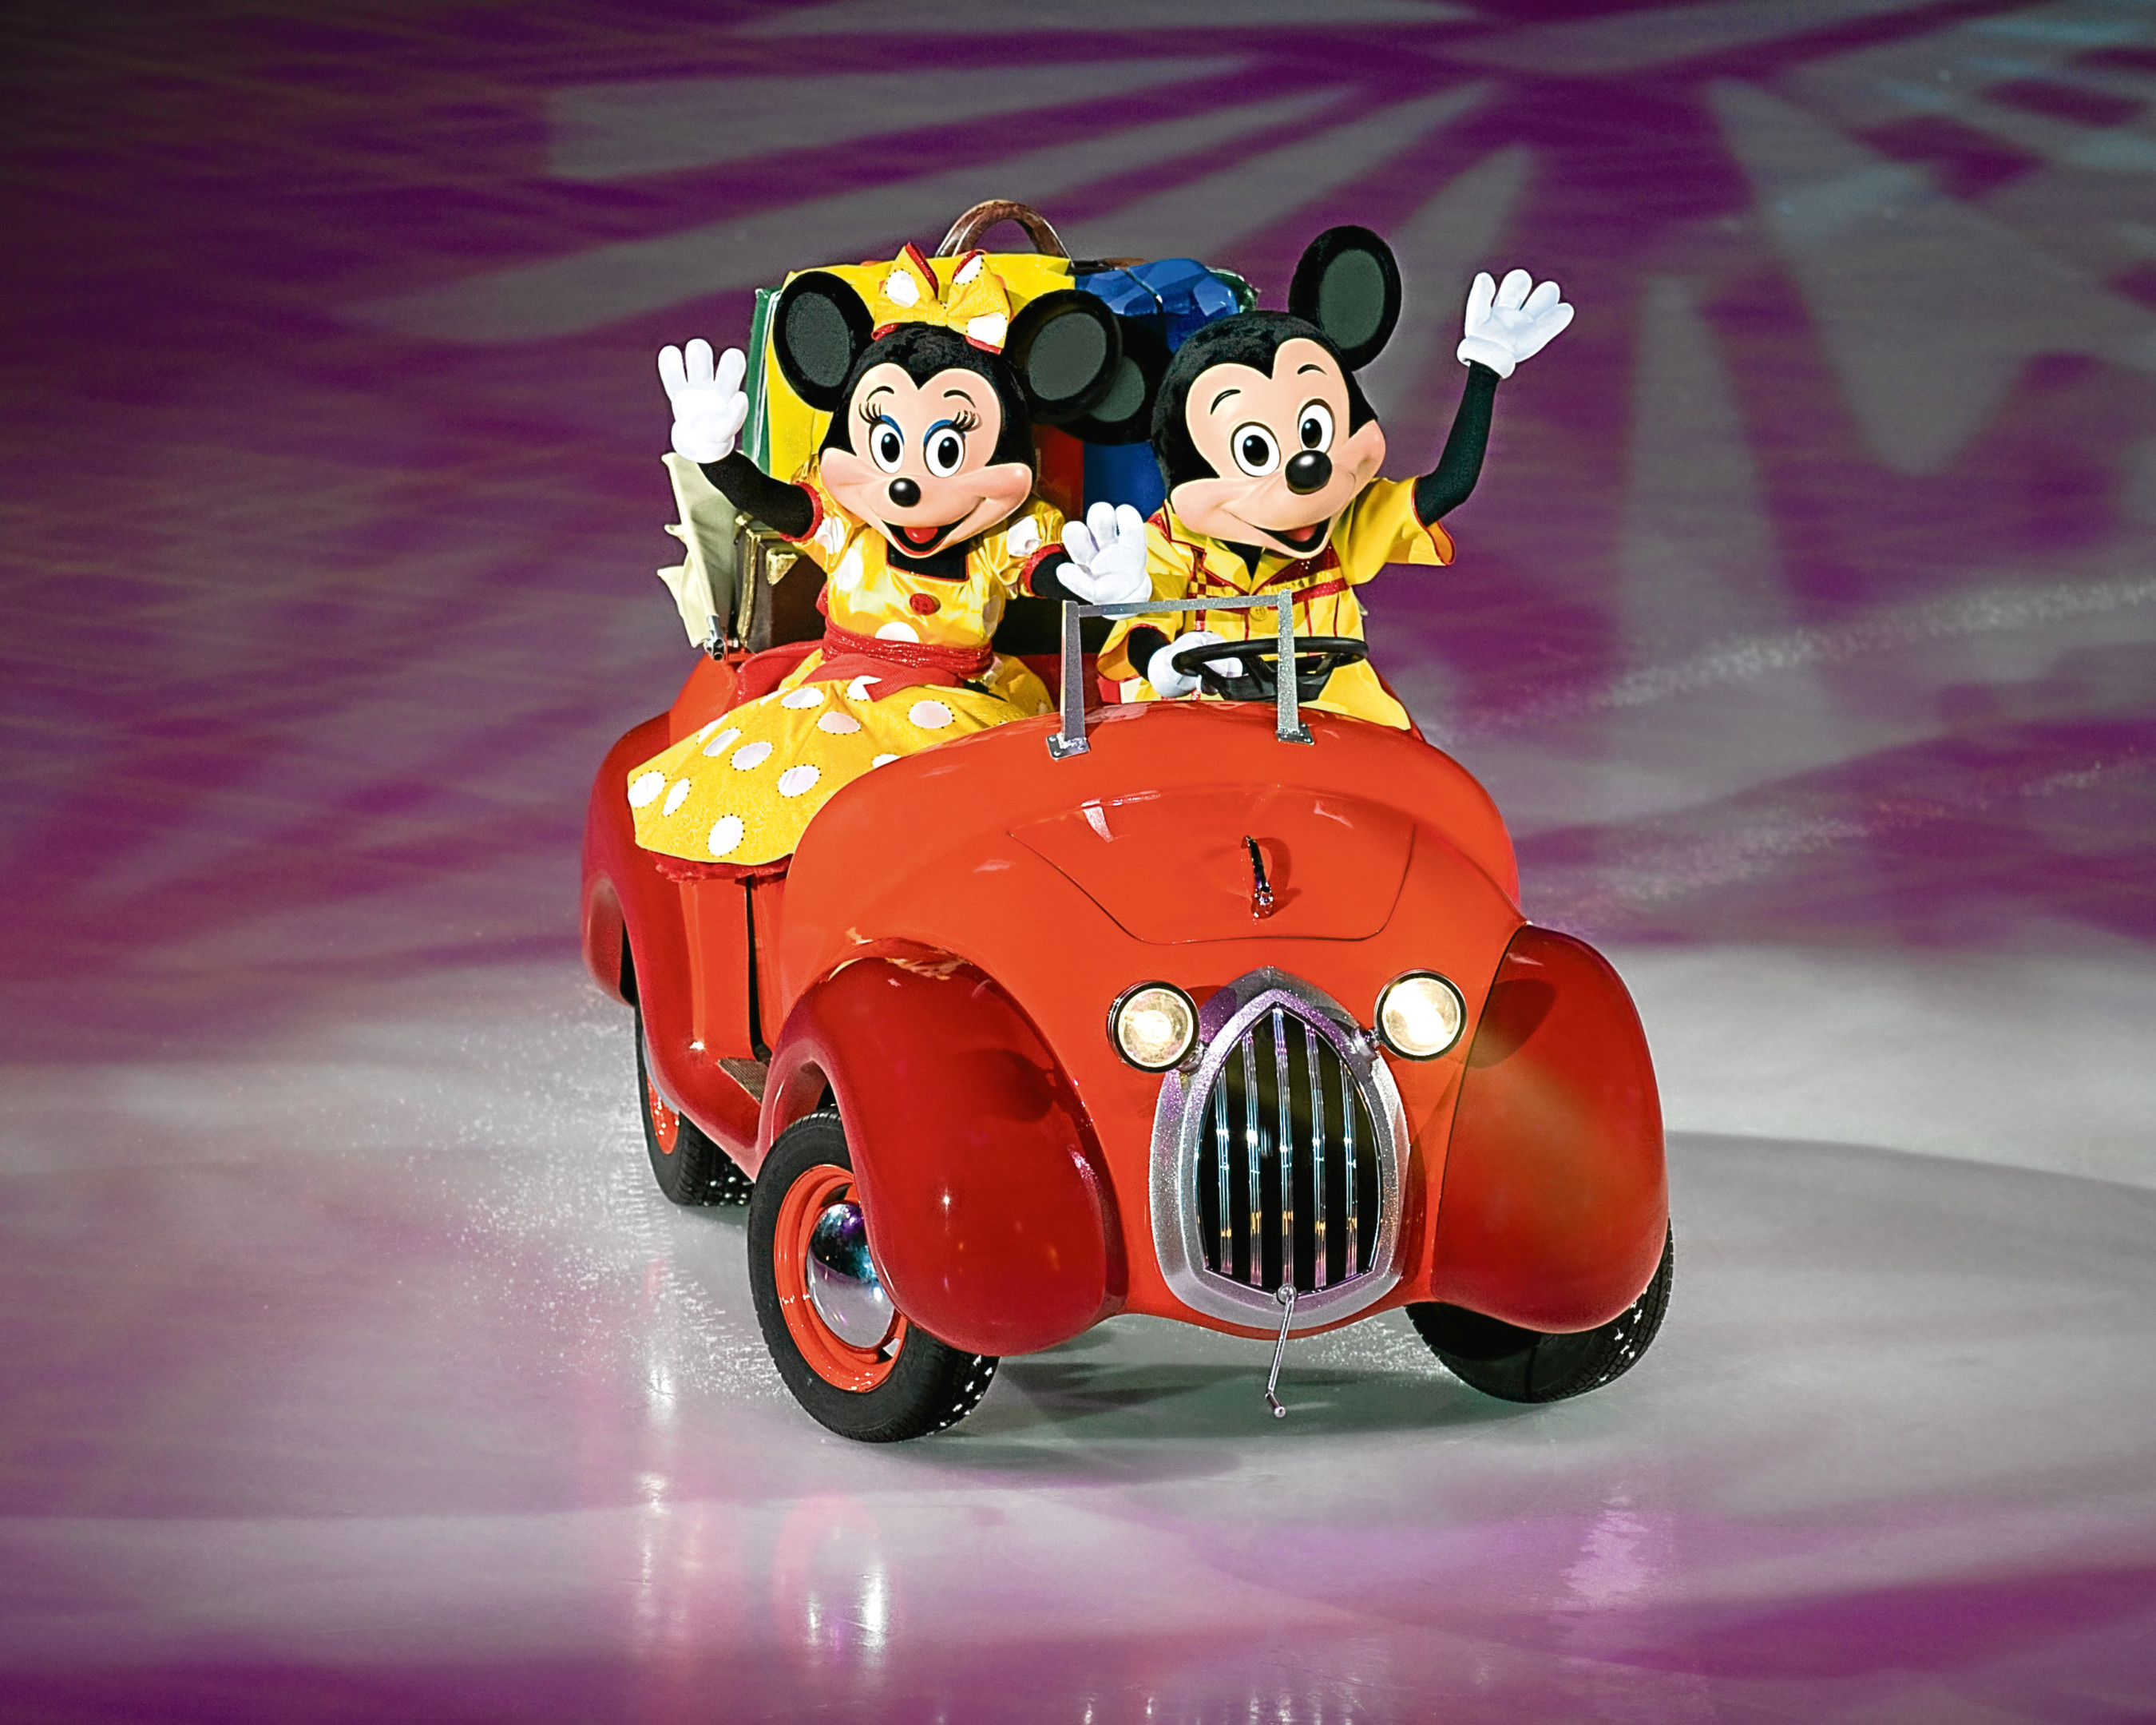 Fan favourites Micky and Minnie Mouse